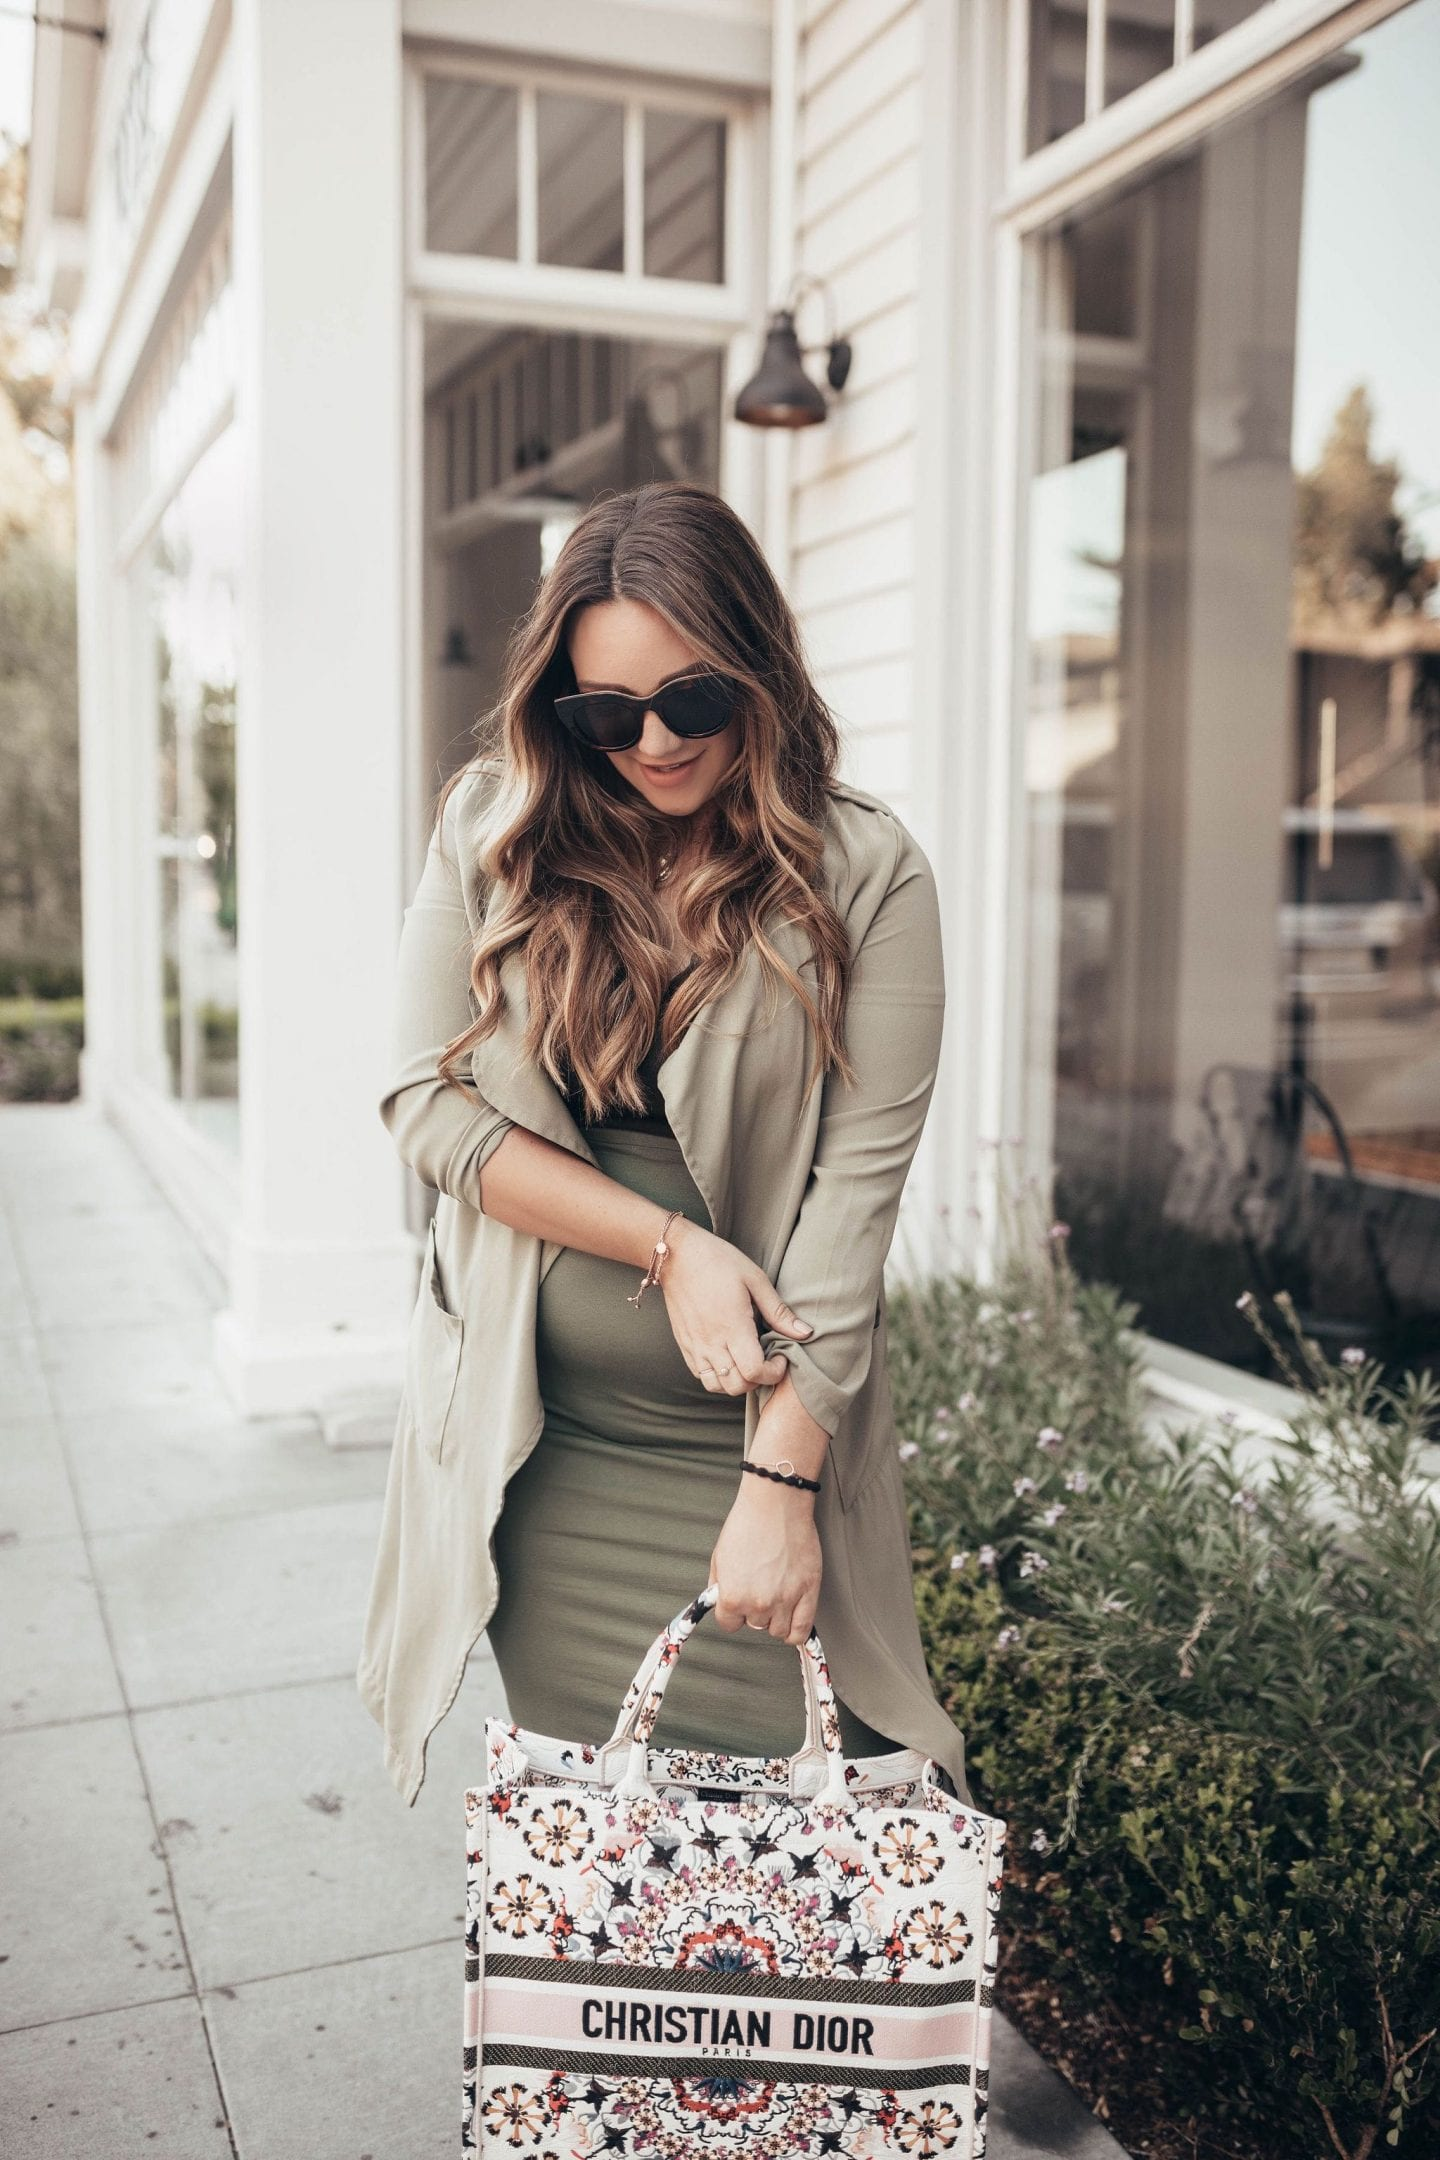 5 Cool Mom Outfits For Fall From Target I Fall Fashion I Back To School Fashion I Fashion Blog I via justaddglam.com   5 Cool Mom Fall Outfits From Target by popular San Francisco fashion blog, Just Add Glam: image of a woman wearing a olive green pencil skirt, black top, trench coat, and carrying a Christian Dior bag.